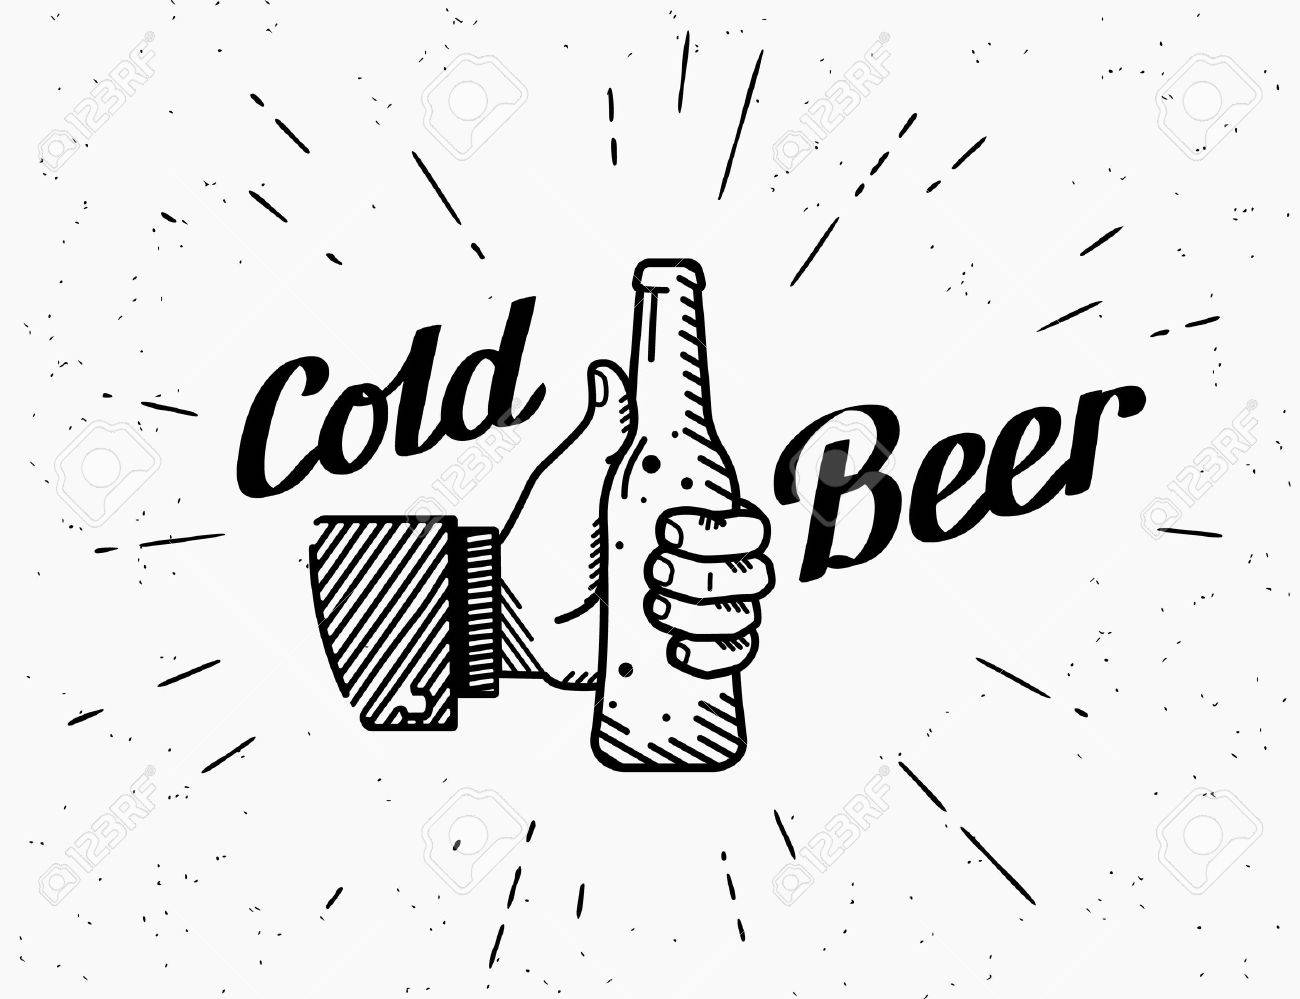 Thumbs up symbol icon with cold beer bottle. Retro fashioned illustration of human hand holds beer bottle with handwritten lettering text on grunge textured background - 51292522